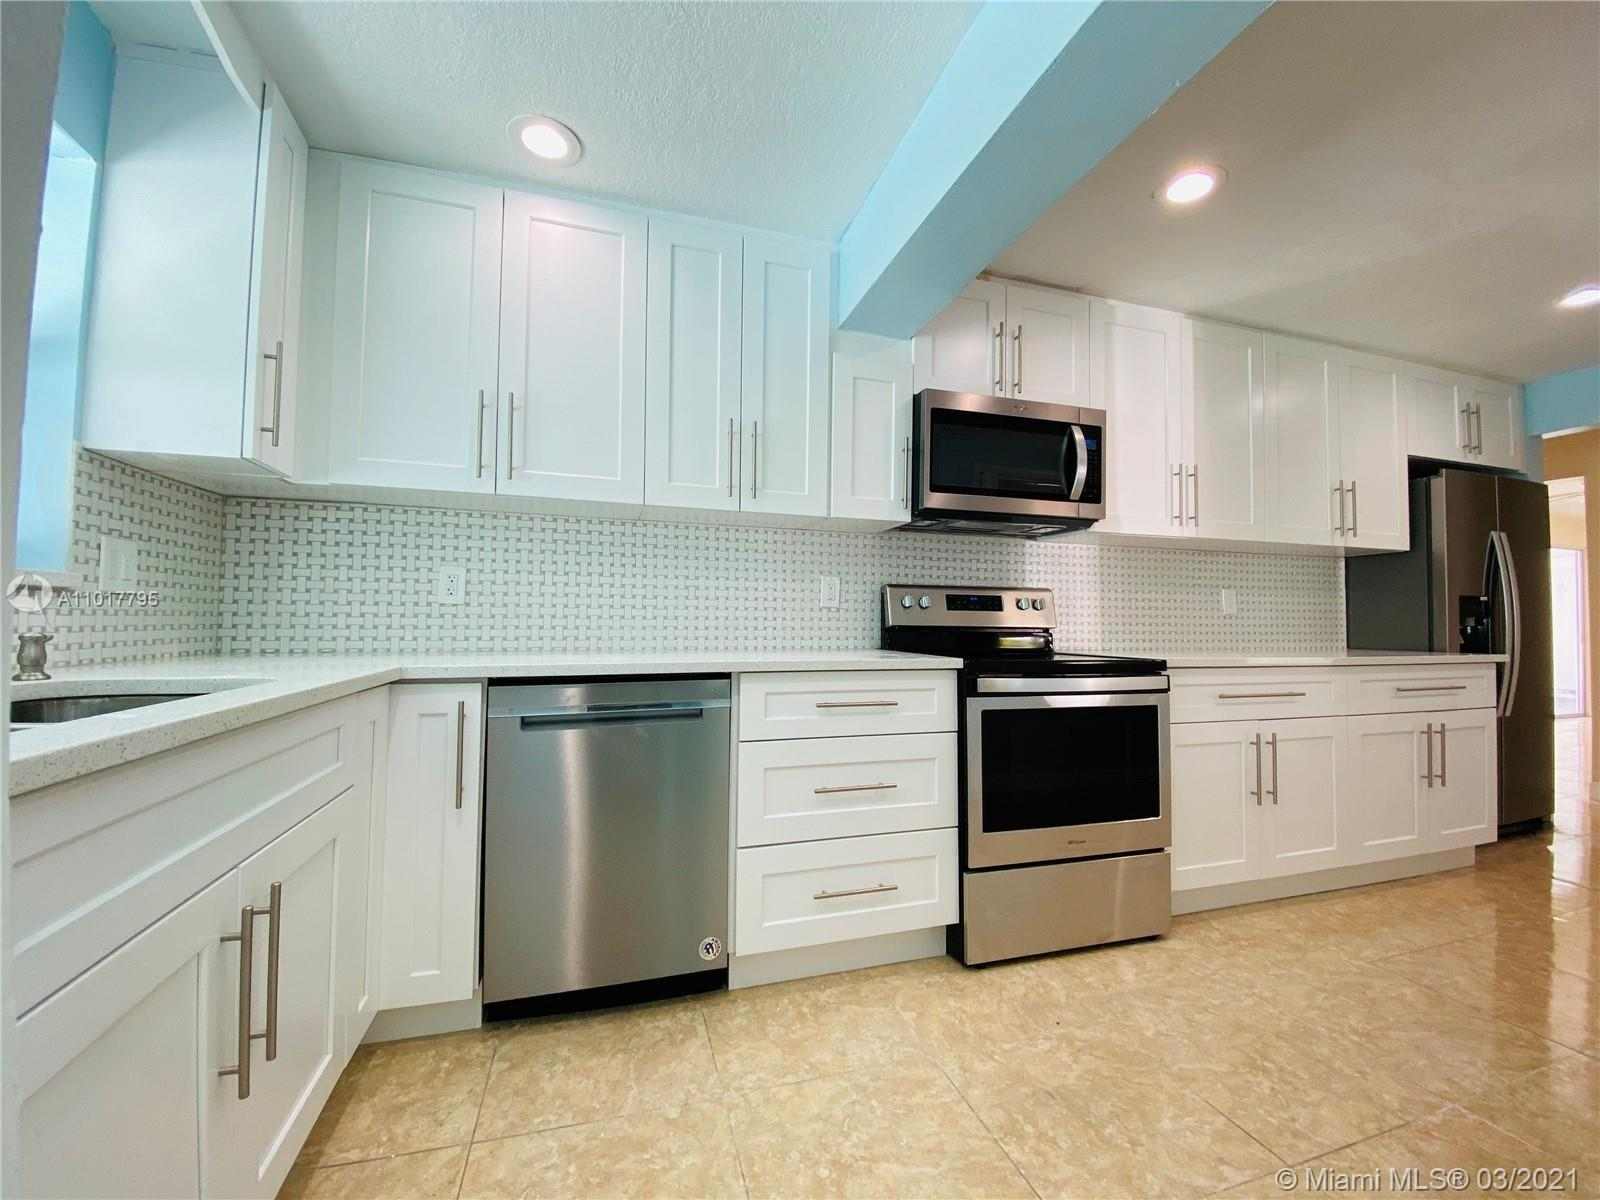 Investors!! TENANT OCCUPIED. Paying $3,300/month 1yr. (began July 19, 2021). Do not disturb tenants.